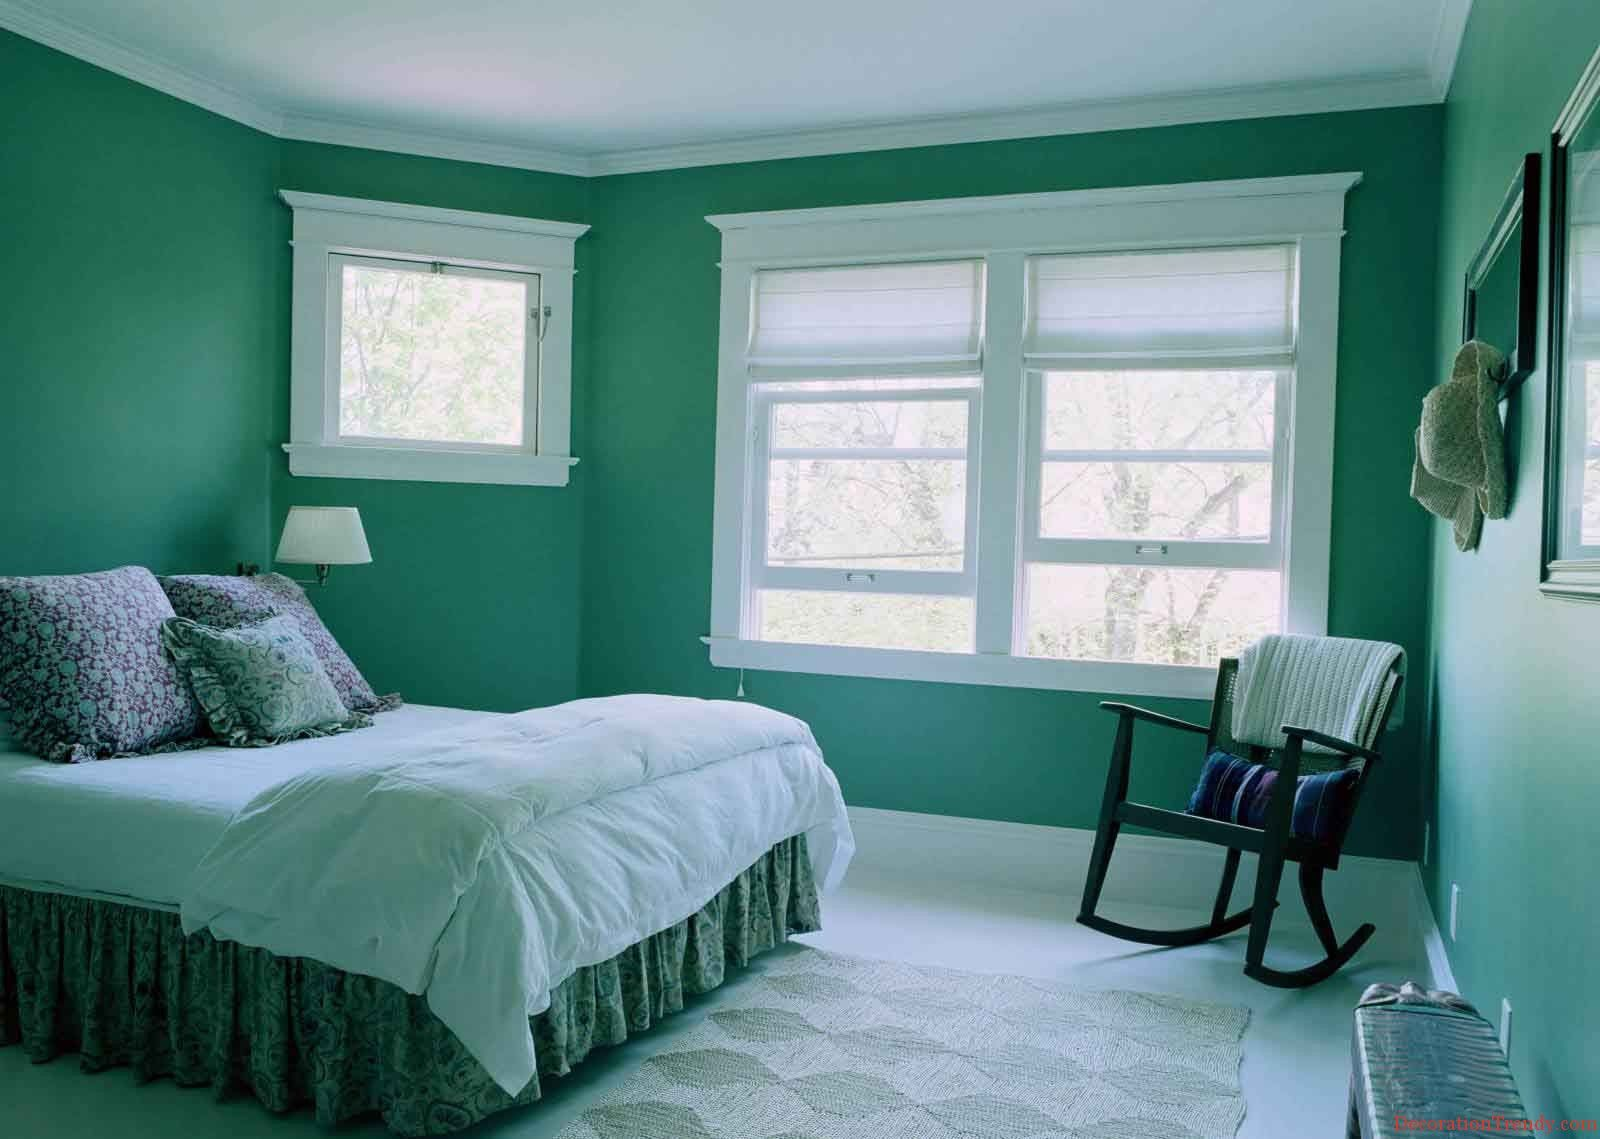 1000 images about master bedroom 2014 on pinterest master bedrooms and paint ideas